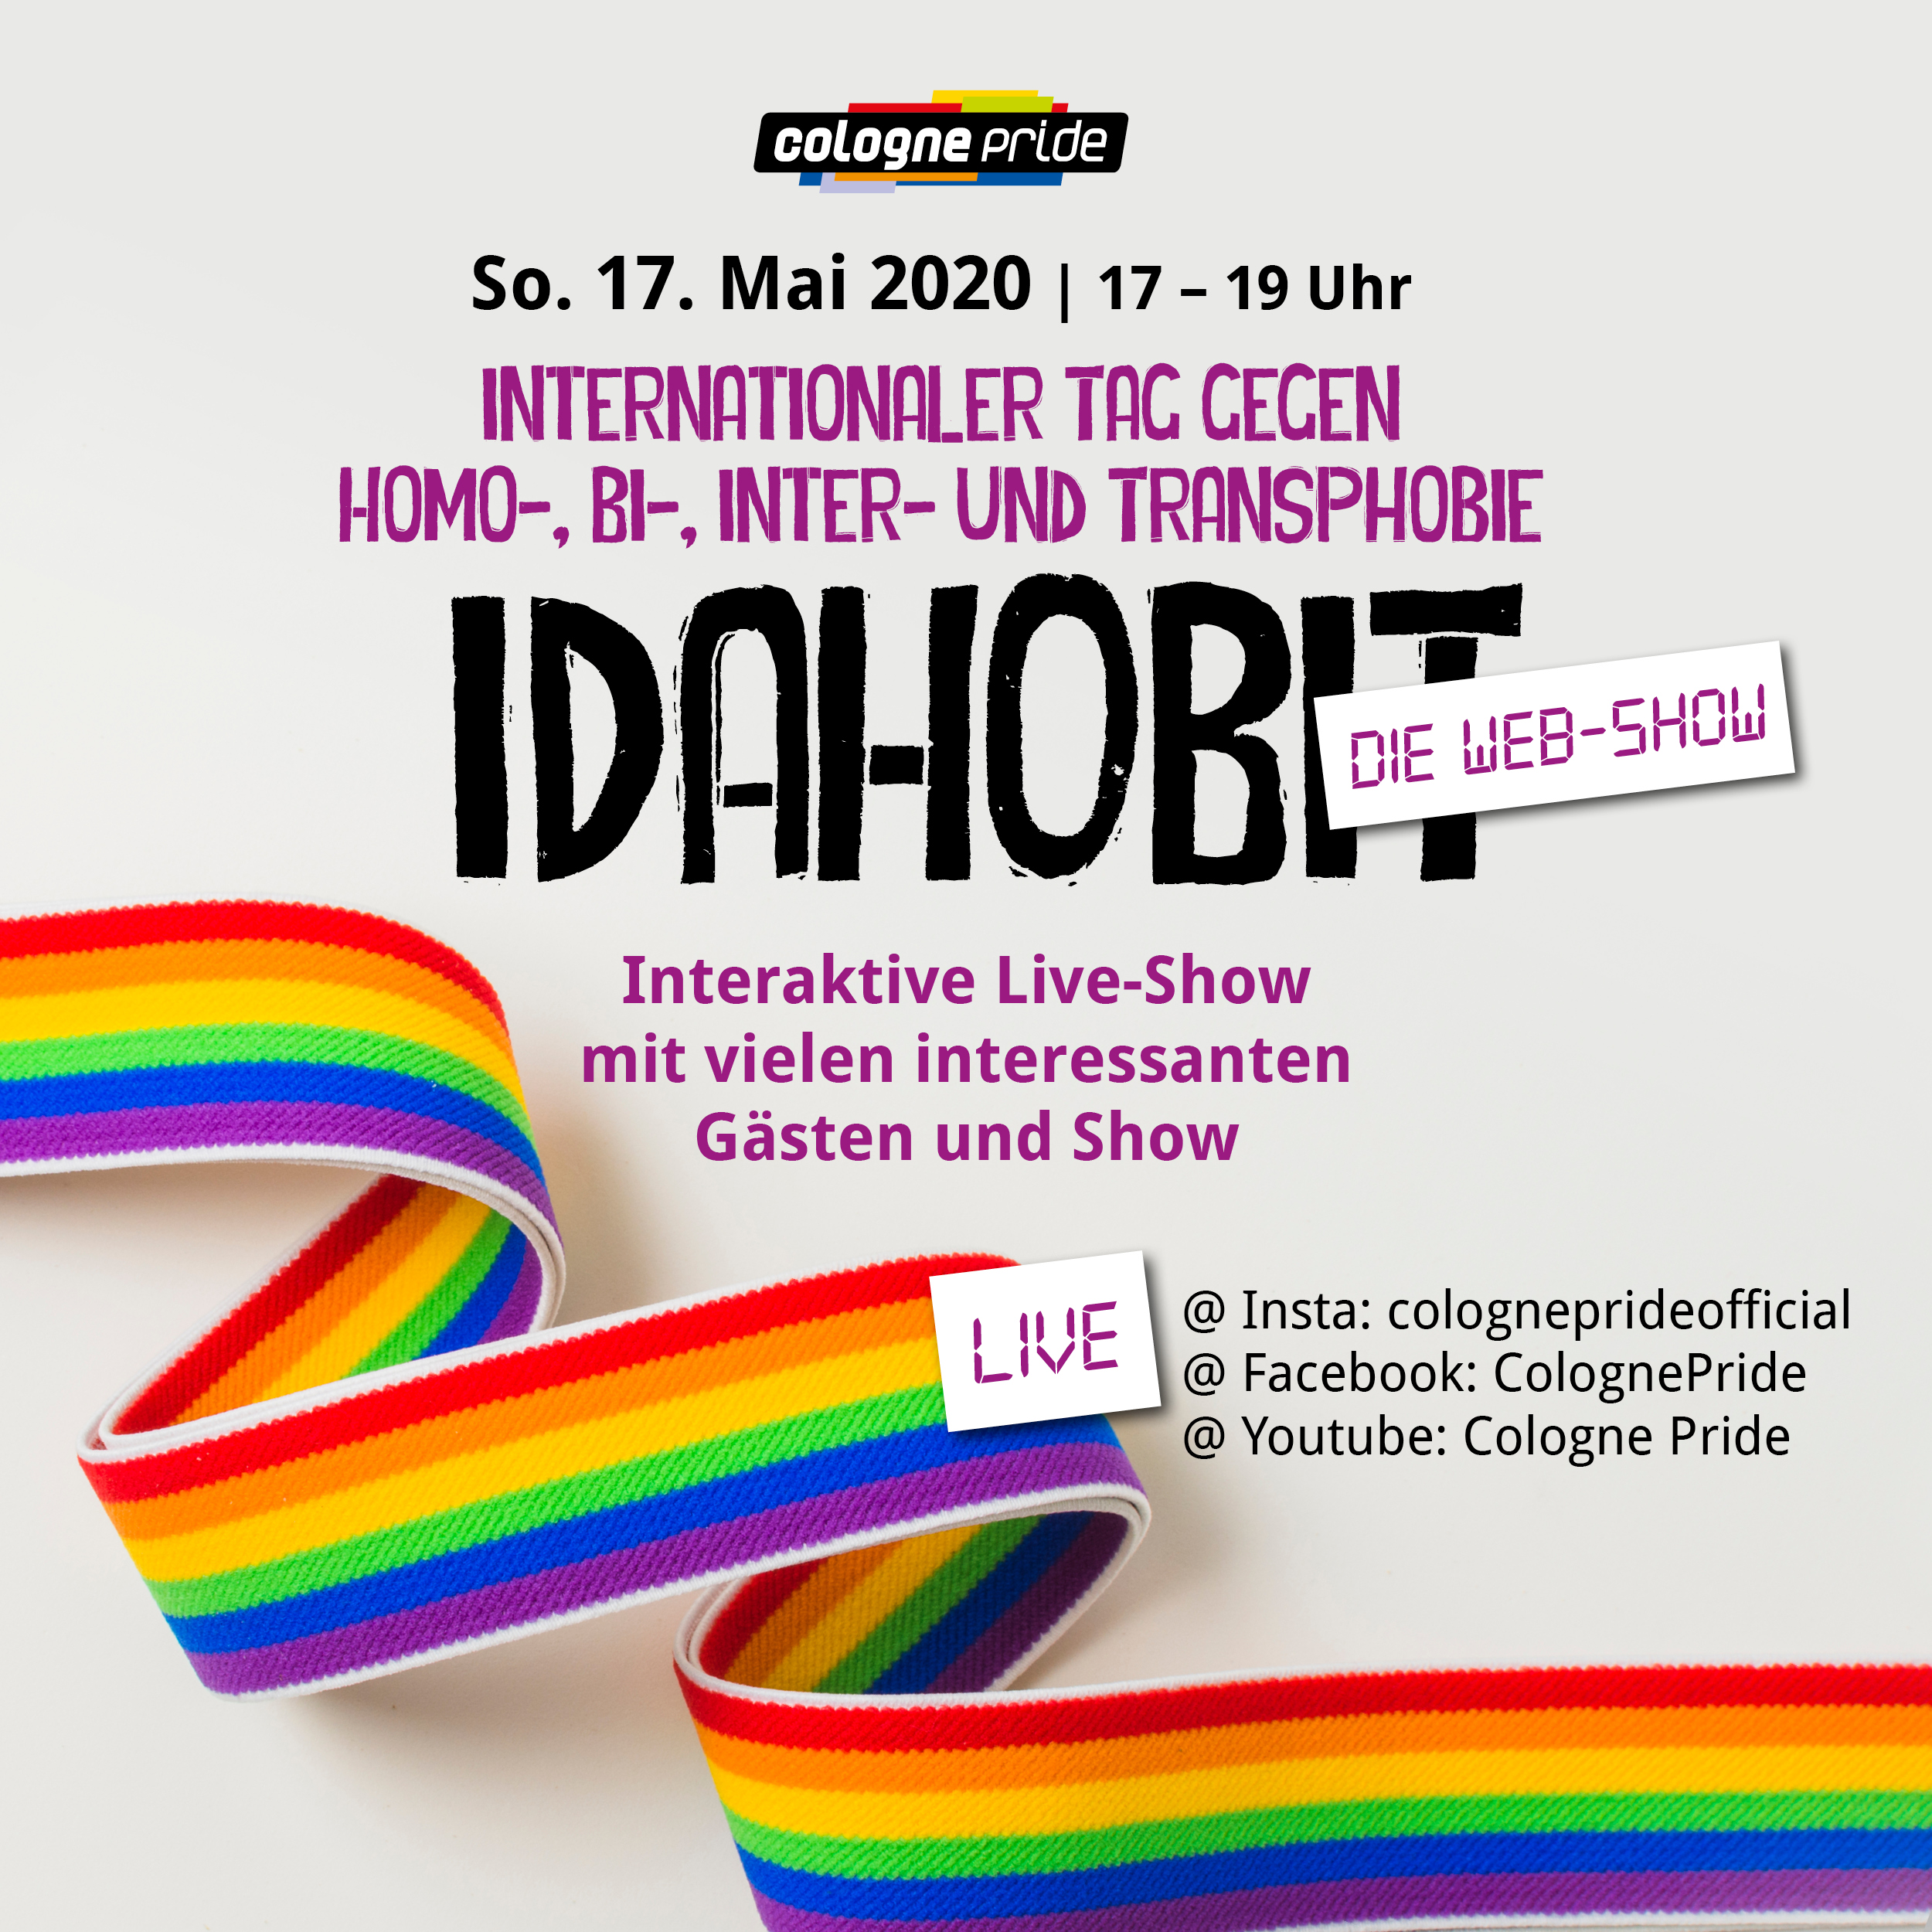 IDAHOBIT - Die Web-Show